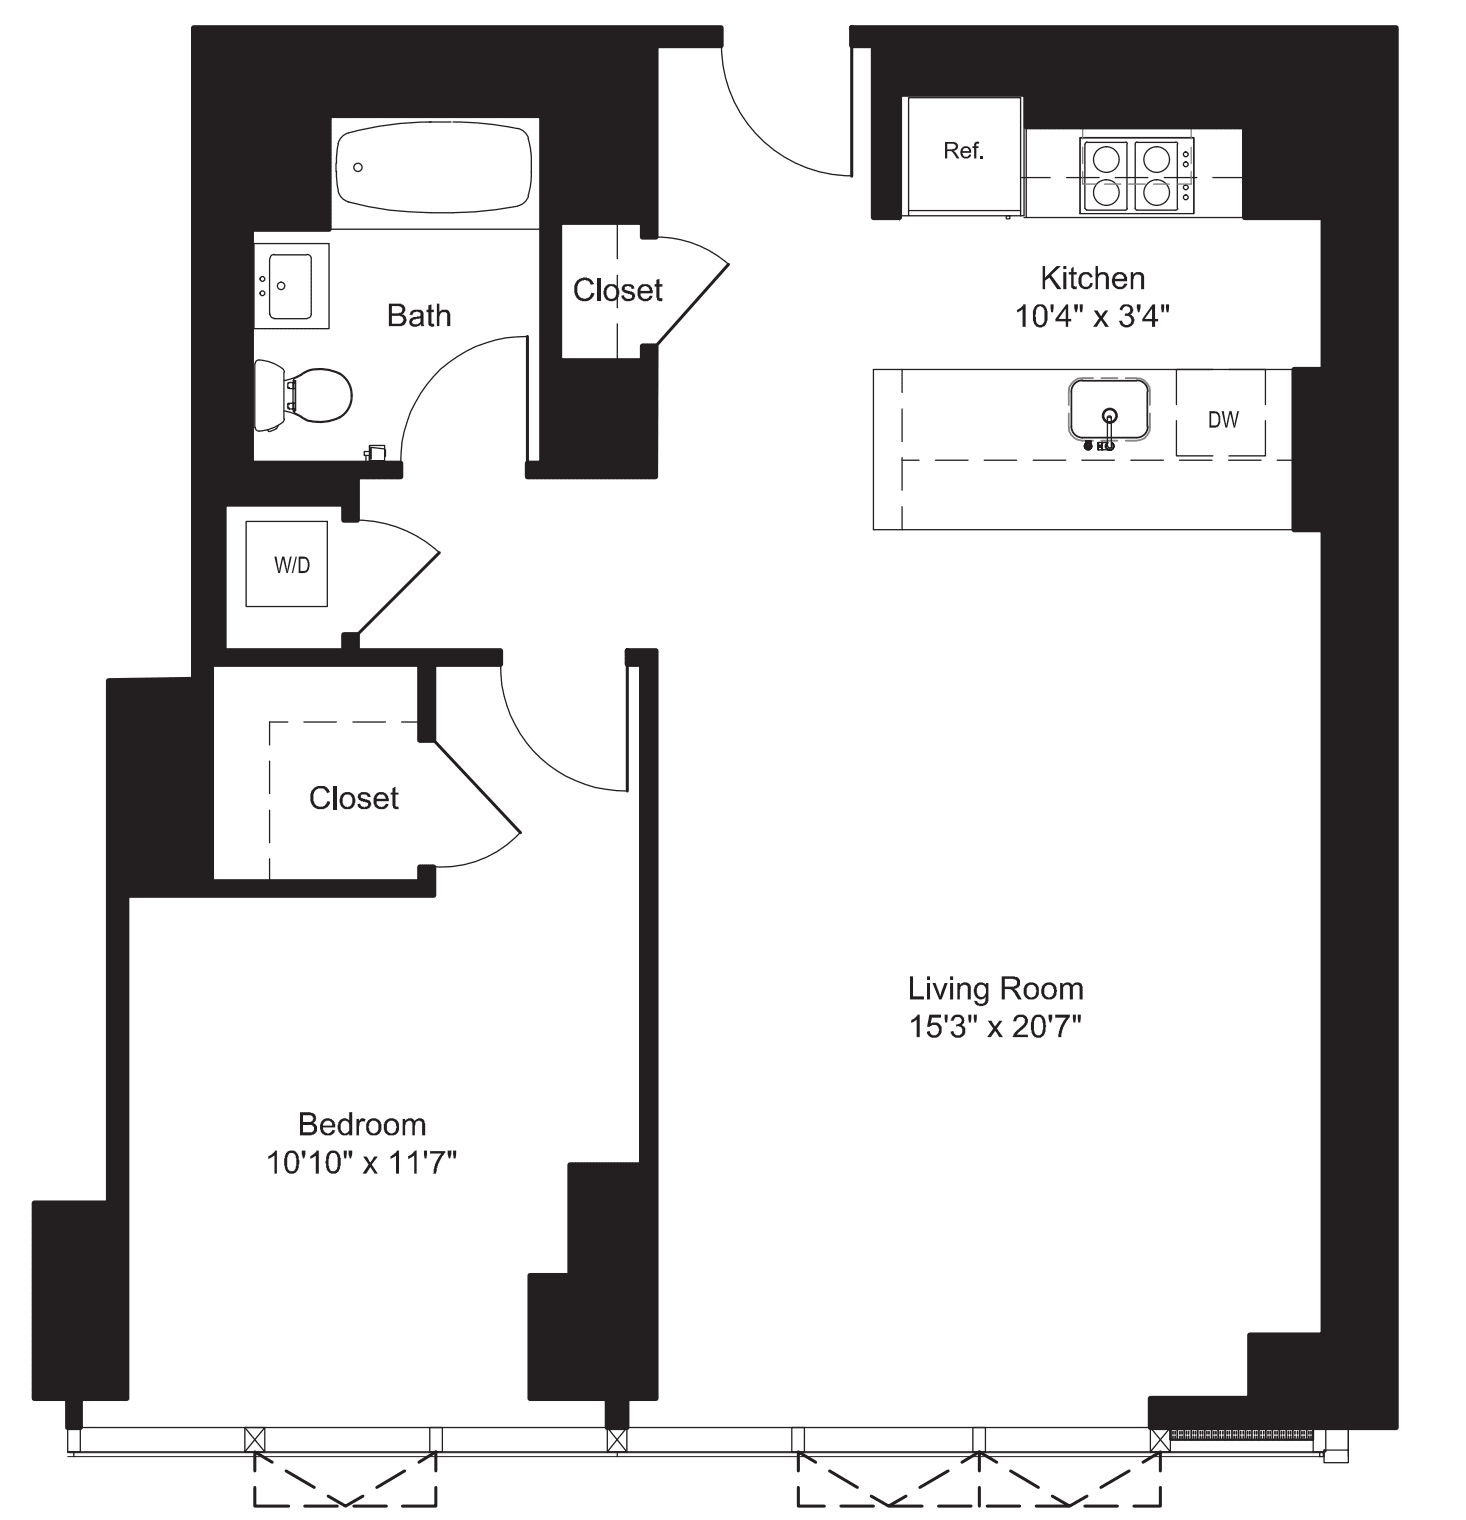 One Bedroom M 7-19